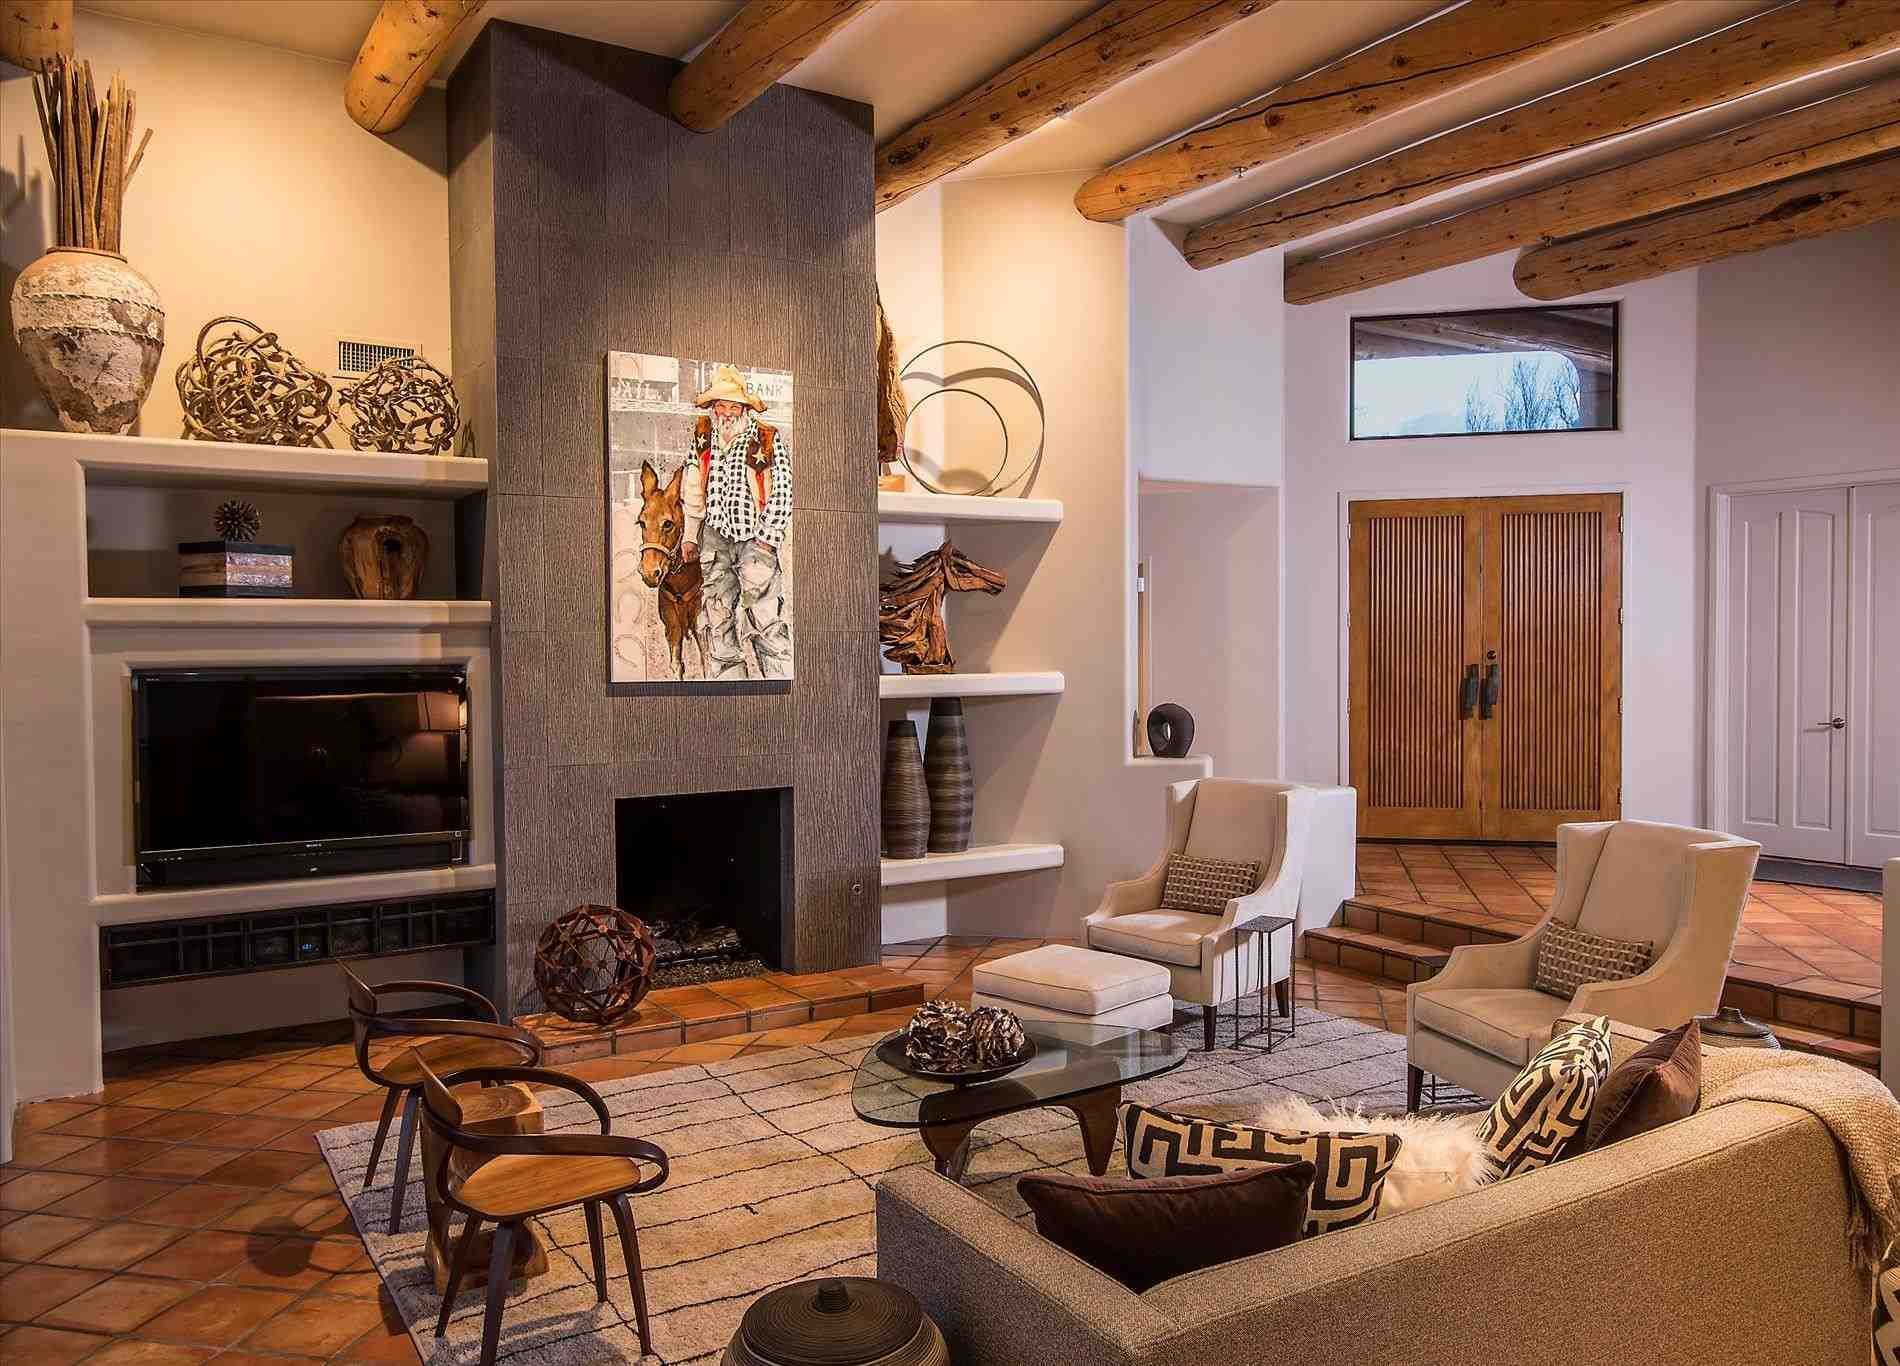 Grounded Pueblostyle Home With